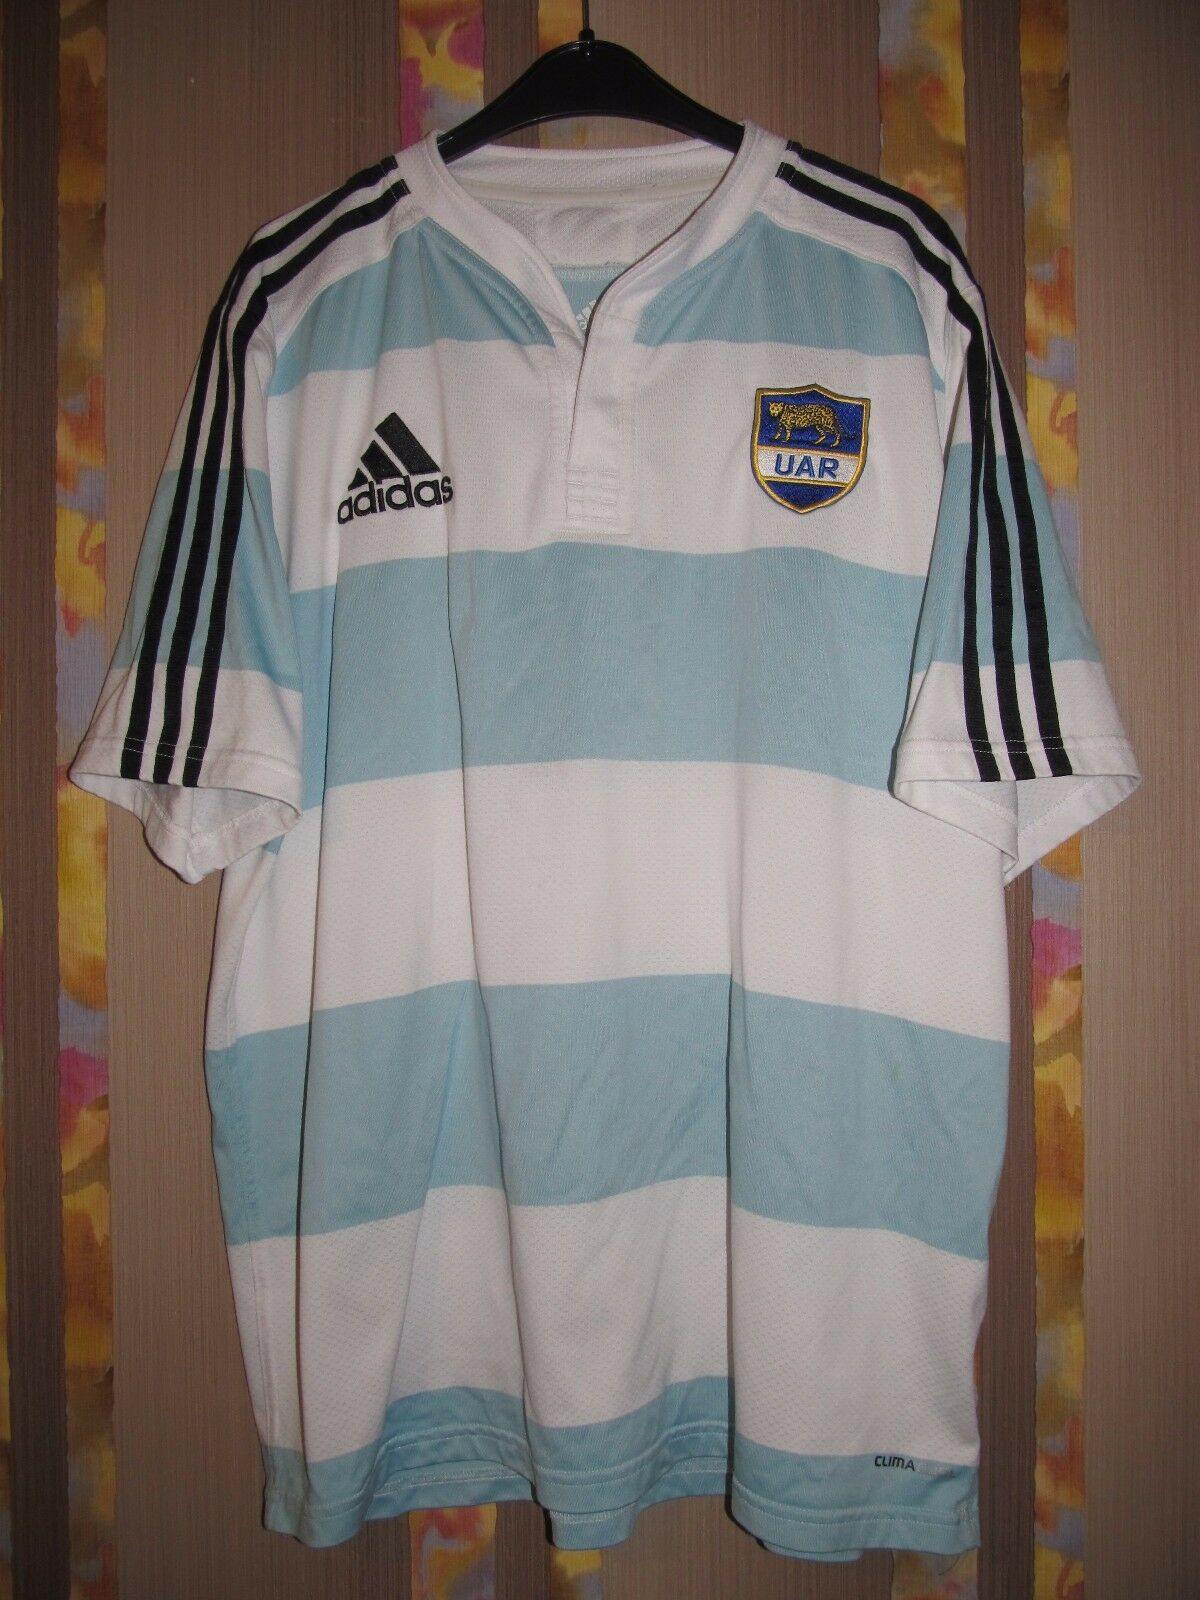 UAR silverINA 2010 2011 HOME RUGBY SHIRT ADIDAS JERSEY LOS PUMAS PLAYER ISSUED L